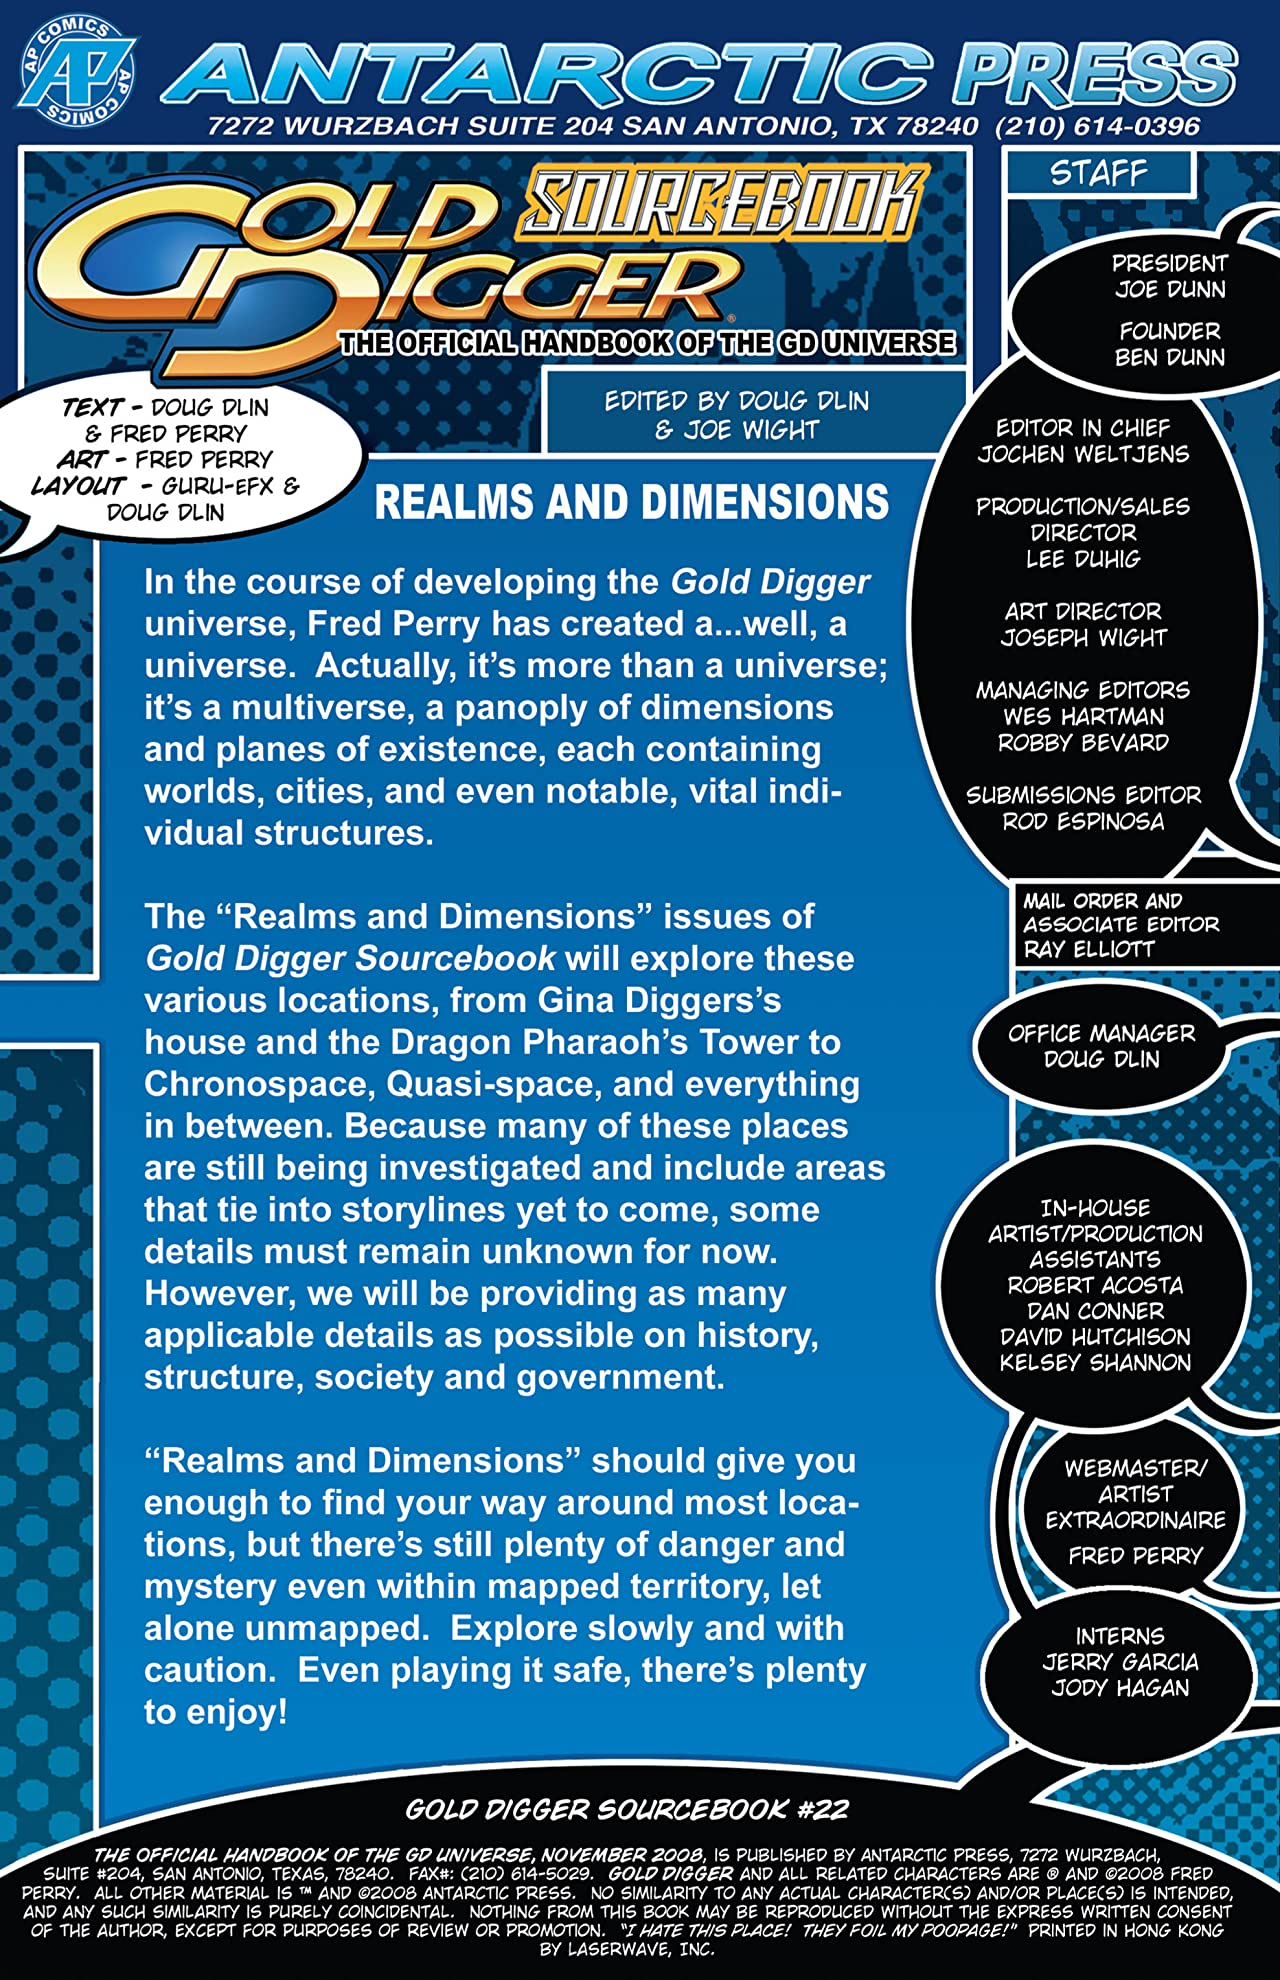 The Gold Digger Sourcebook: The Official Handbook of the Gold Digger Universe #22